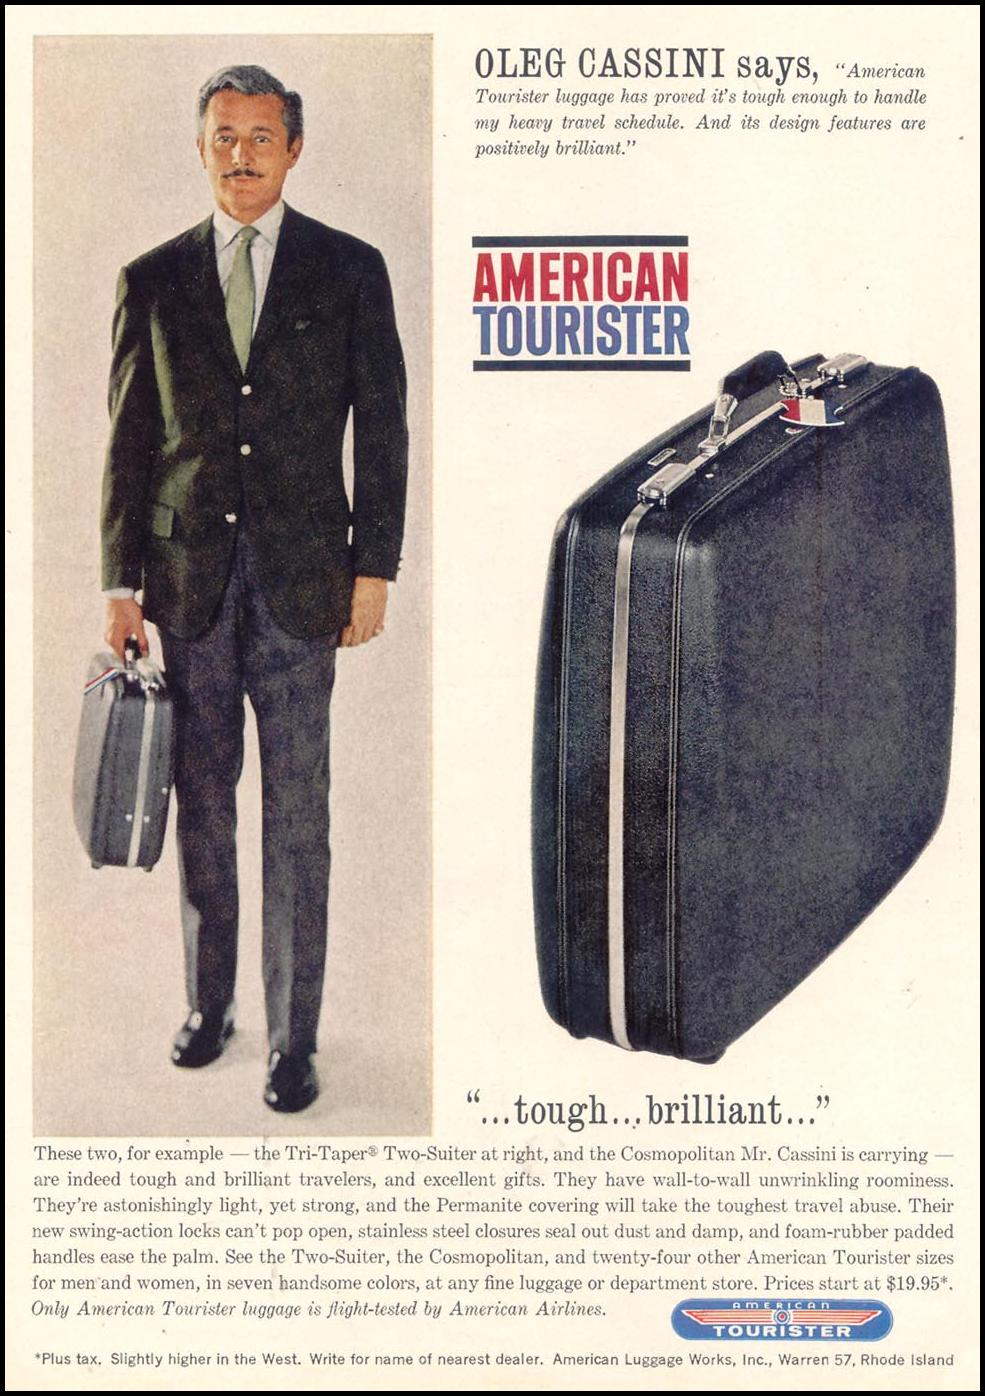 AMERICAN TOURISTER LUGGAGE TIME 12/06/1963 p. 121